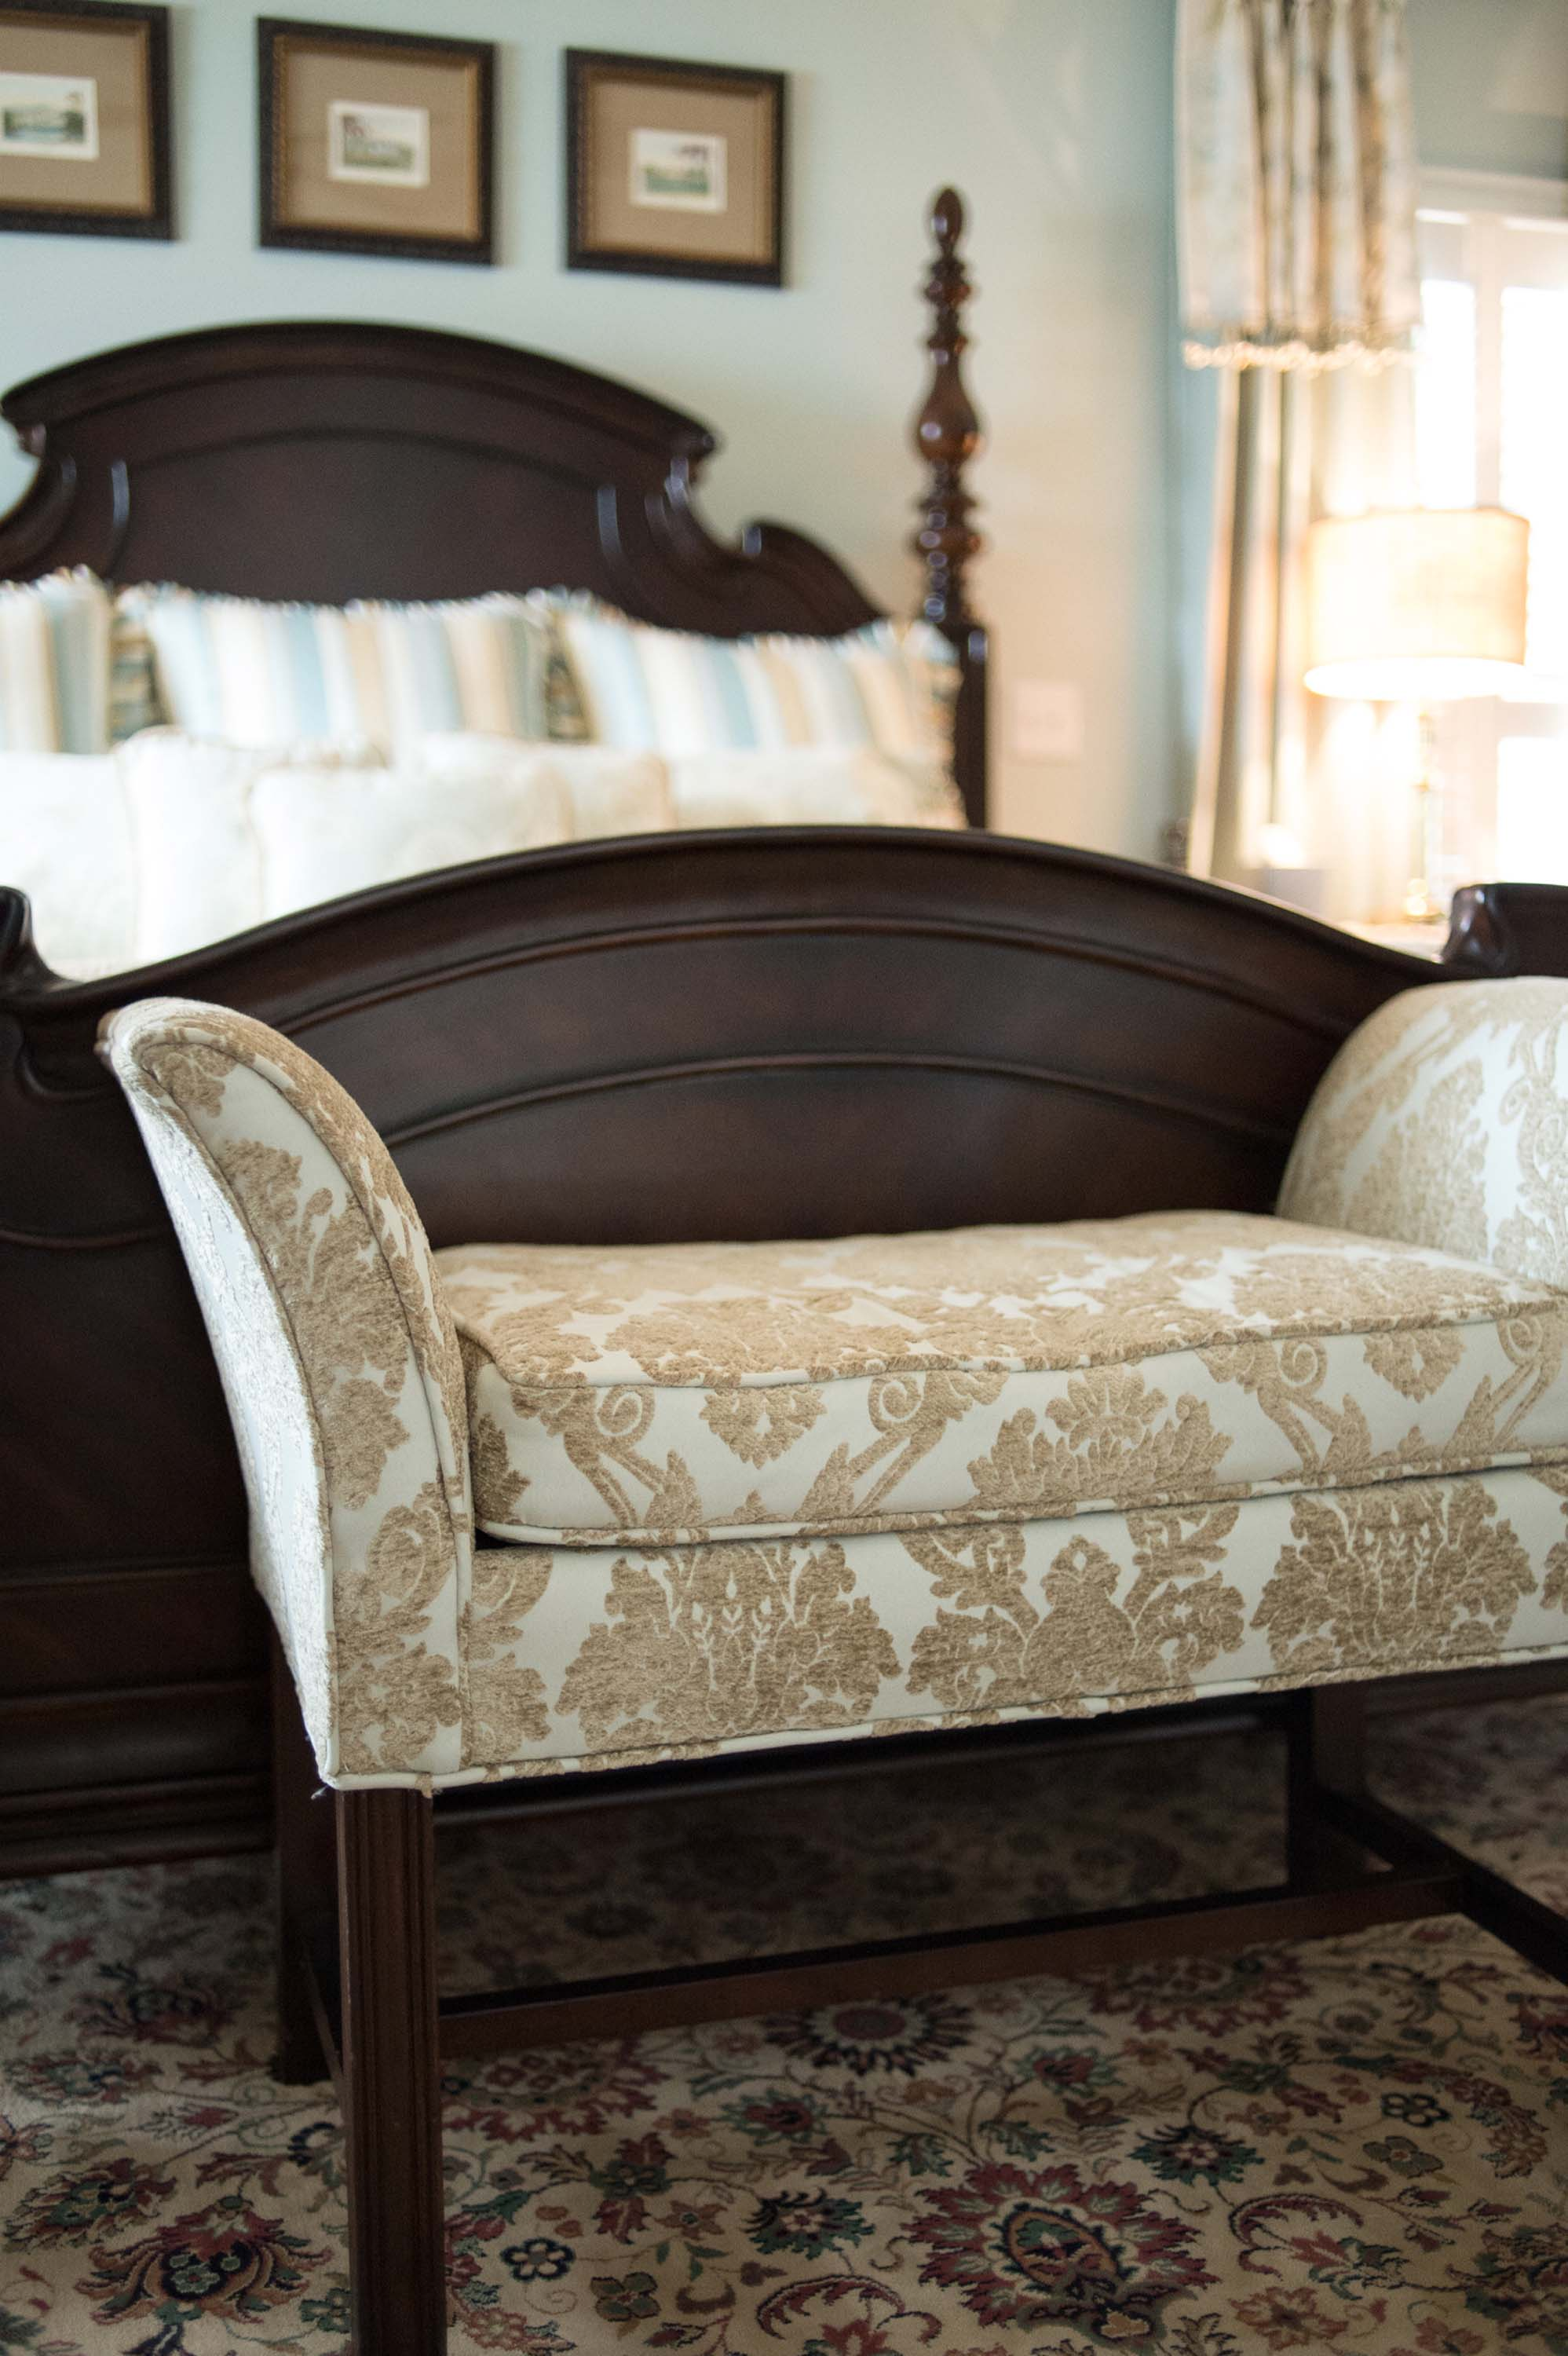 Custom Fabric Printed Bench with King Bed & Artwork